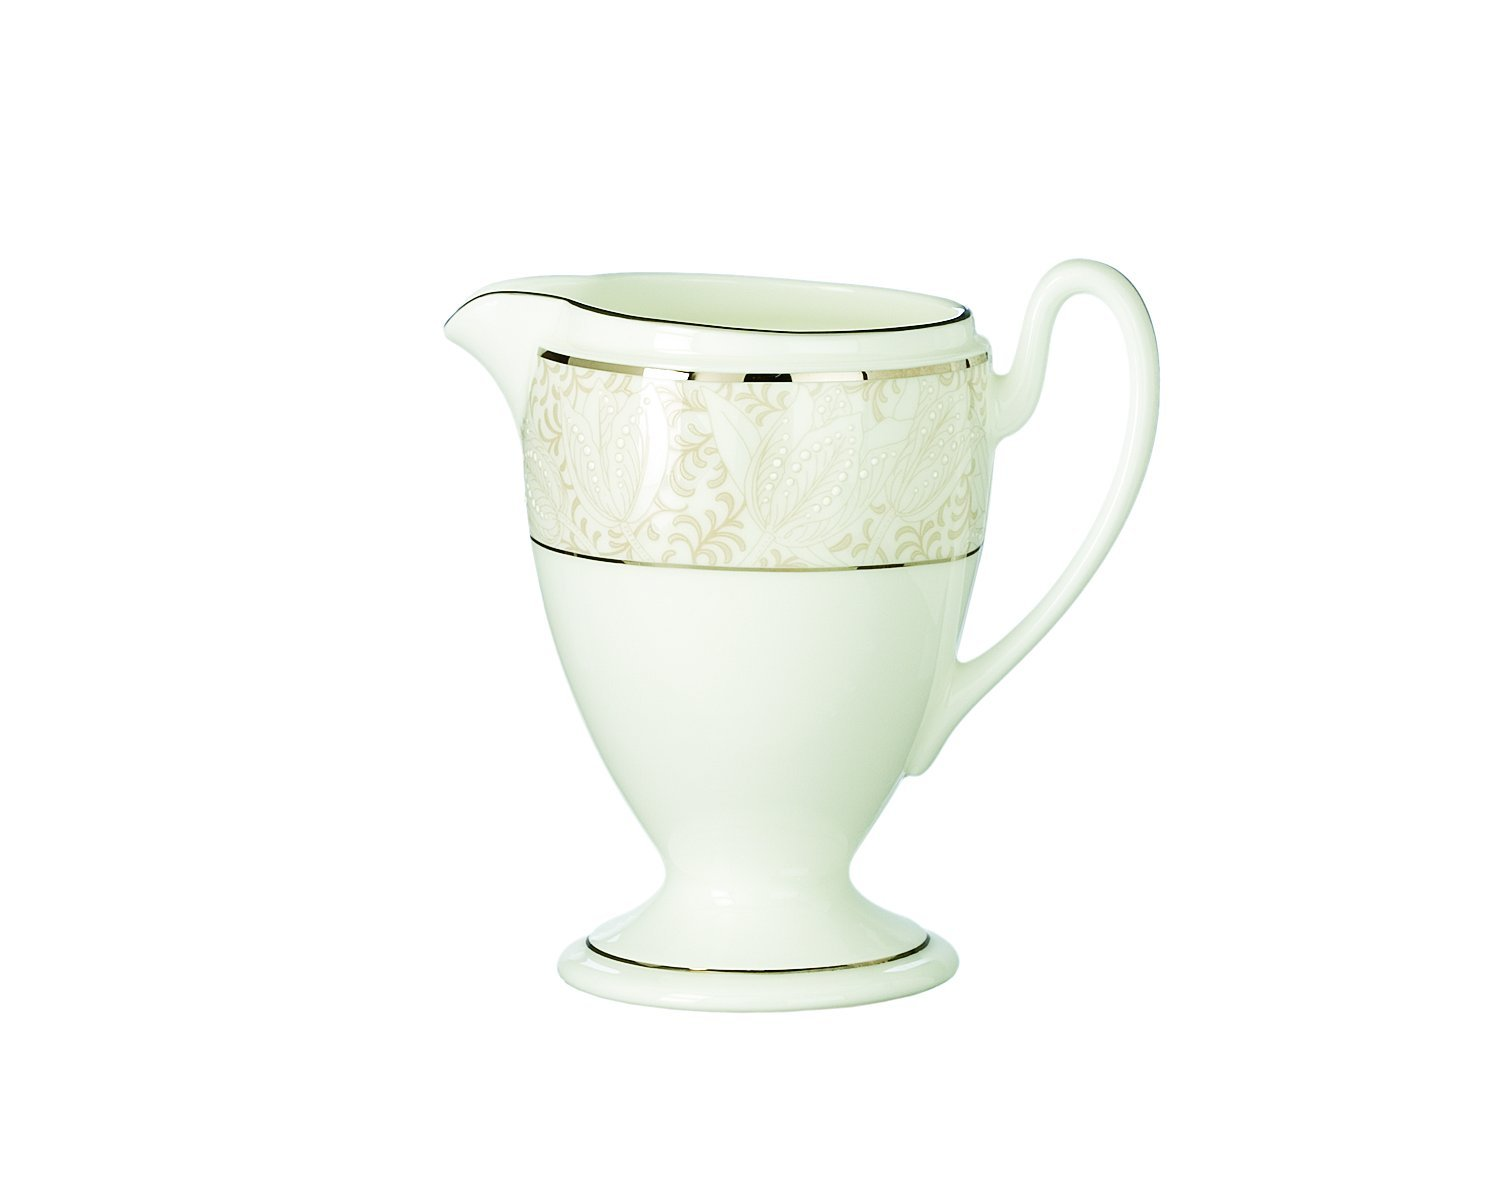 Waterford Bassano Creamer, 8-Ounce